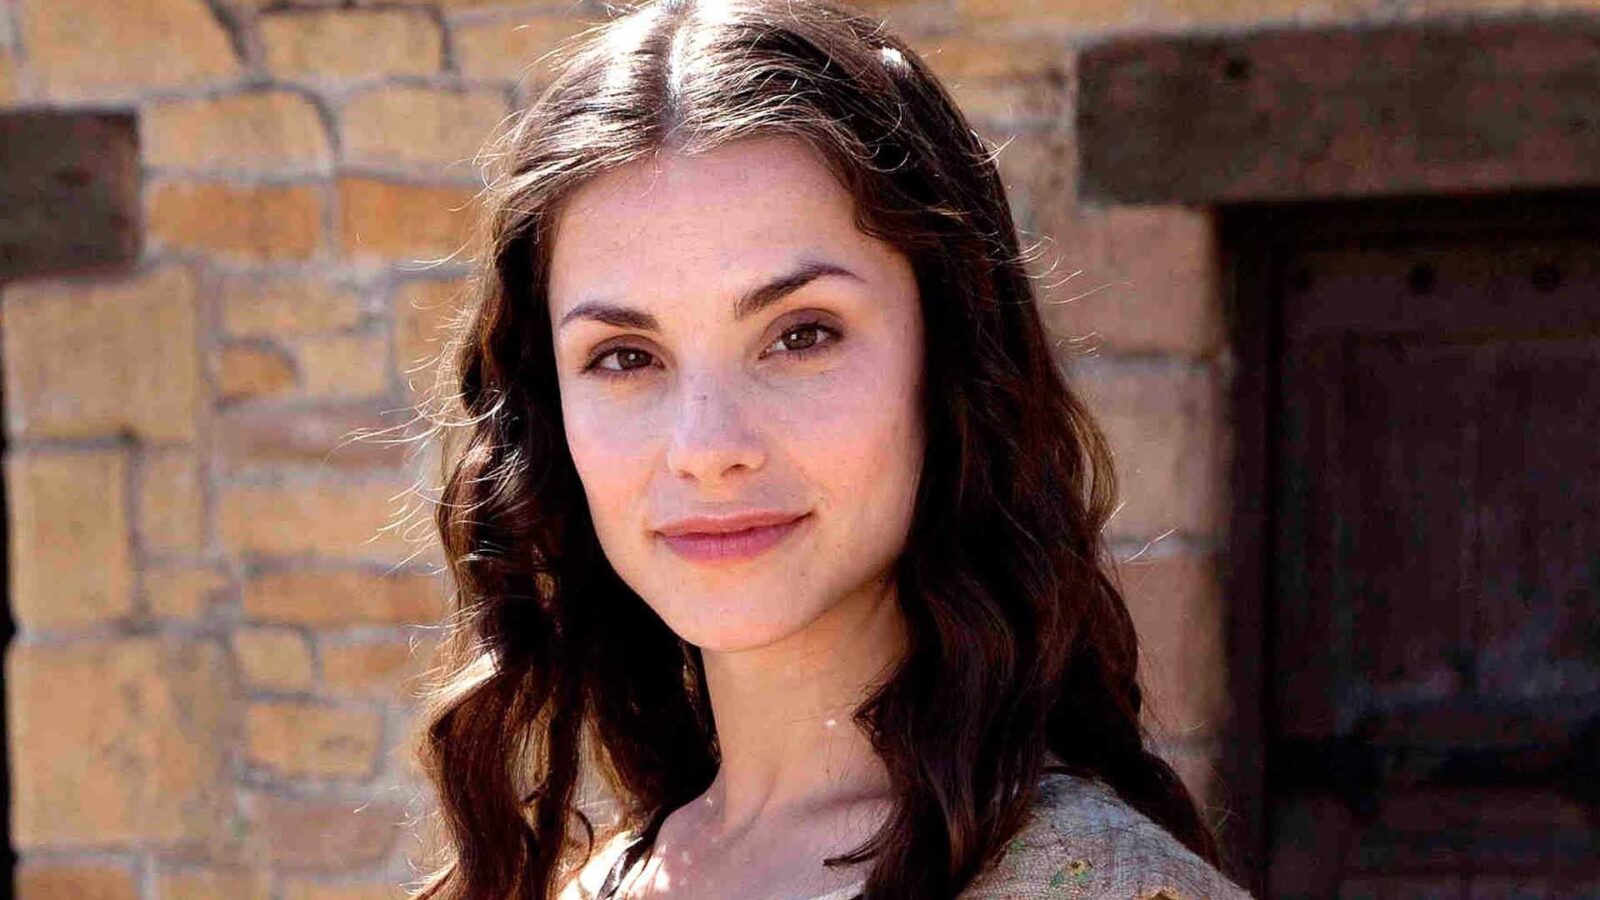 Free Cute Images Wallpapers 13 Charlotte Riley Hd Wallpapers Free Download